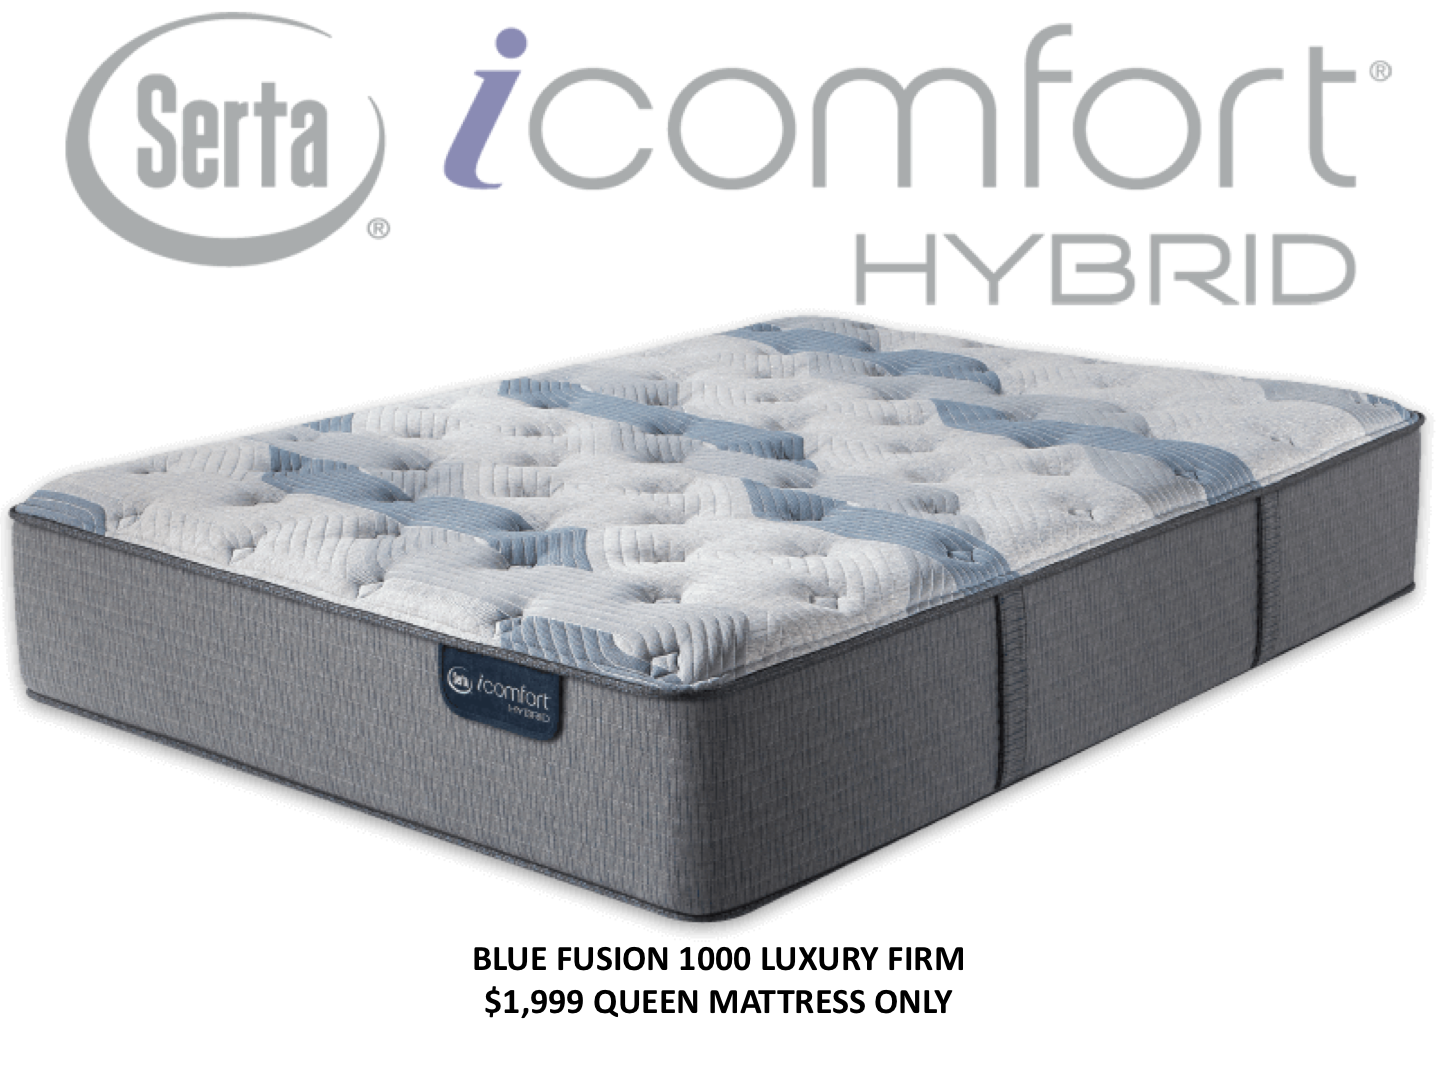 Blue Fusion 1000 Luxury Firm